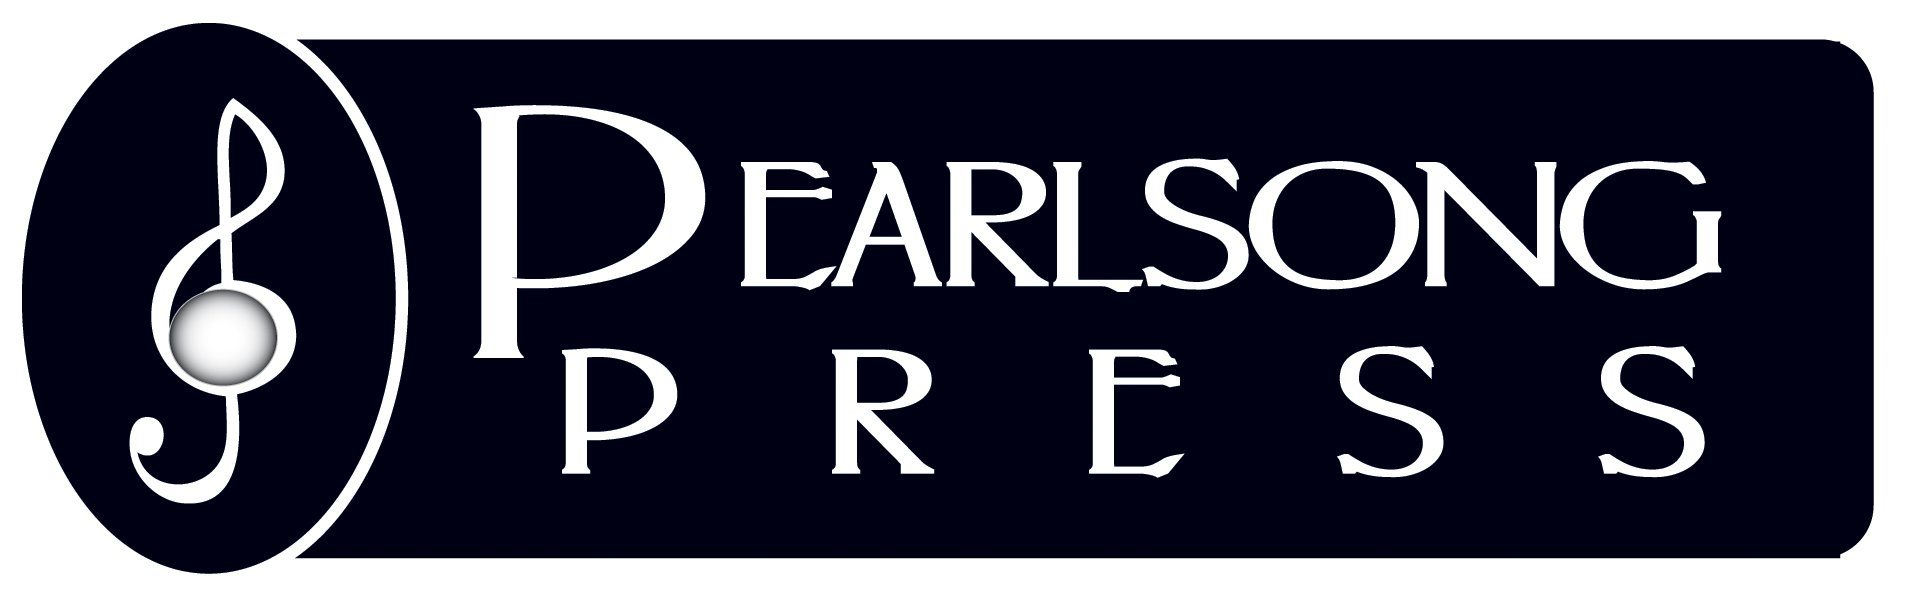 Pearlsong Press logo